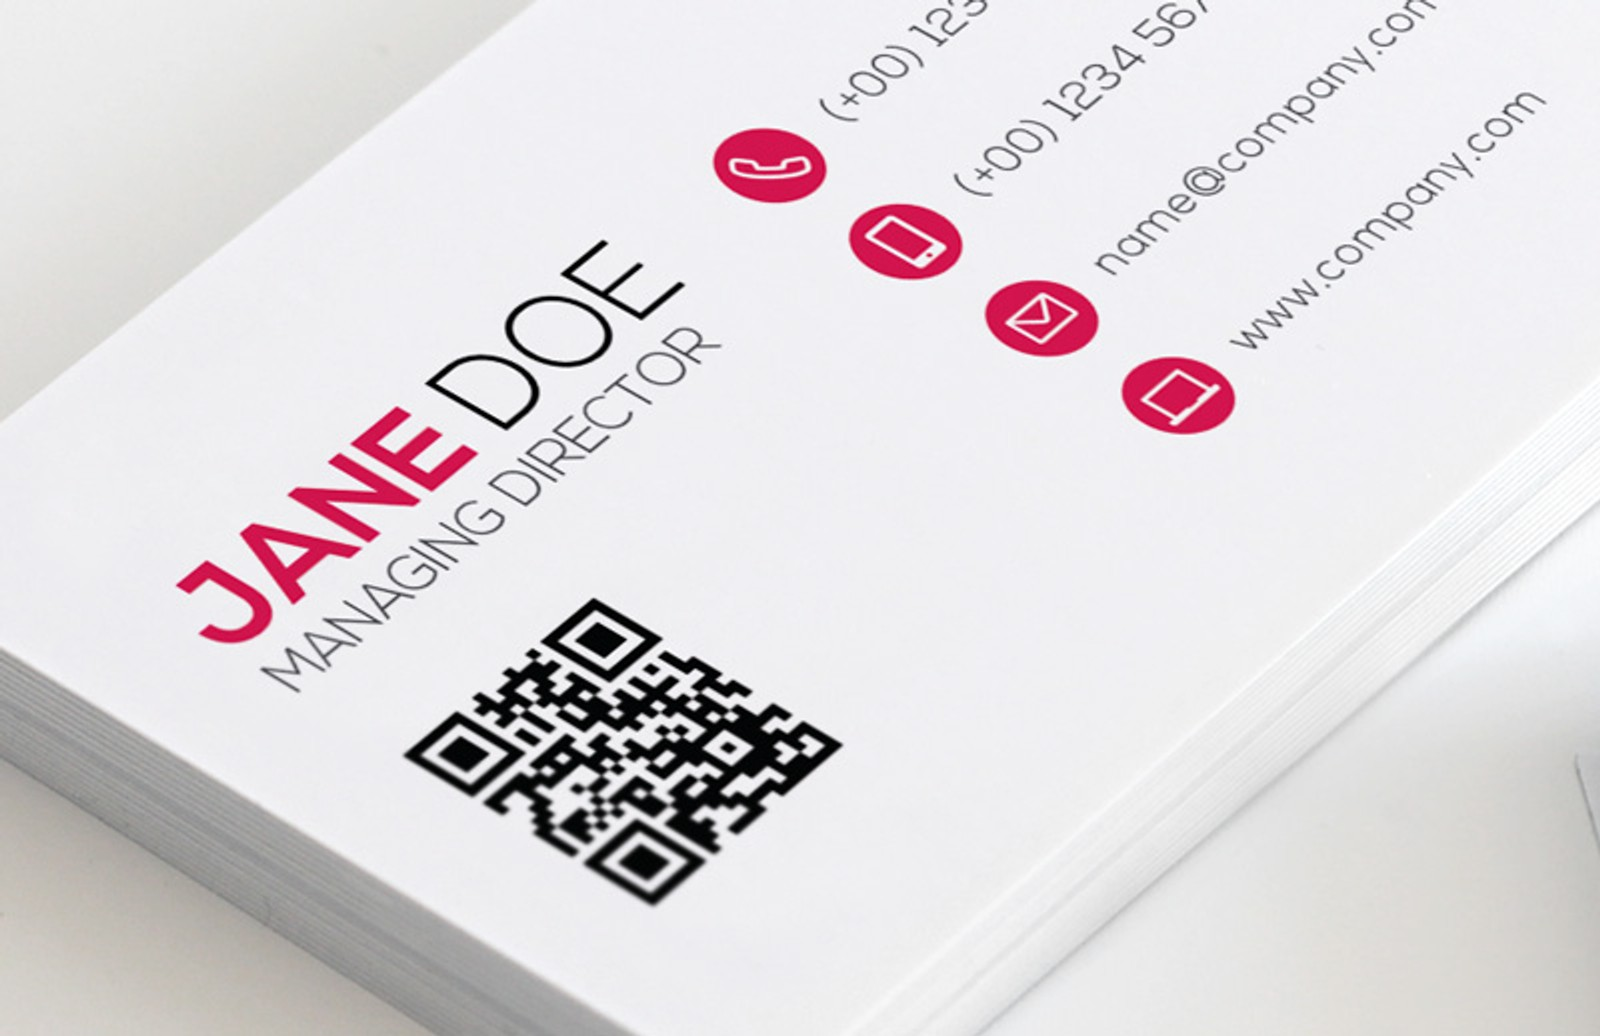 Qr code business card template vol 2 medialoot qr code business card vol 2 preview 1 colourmoves